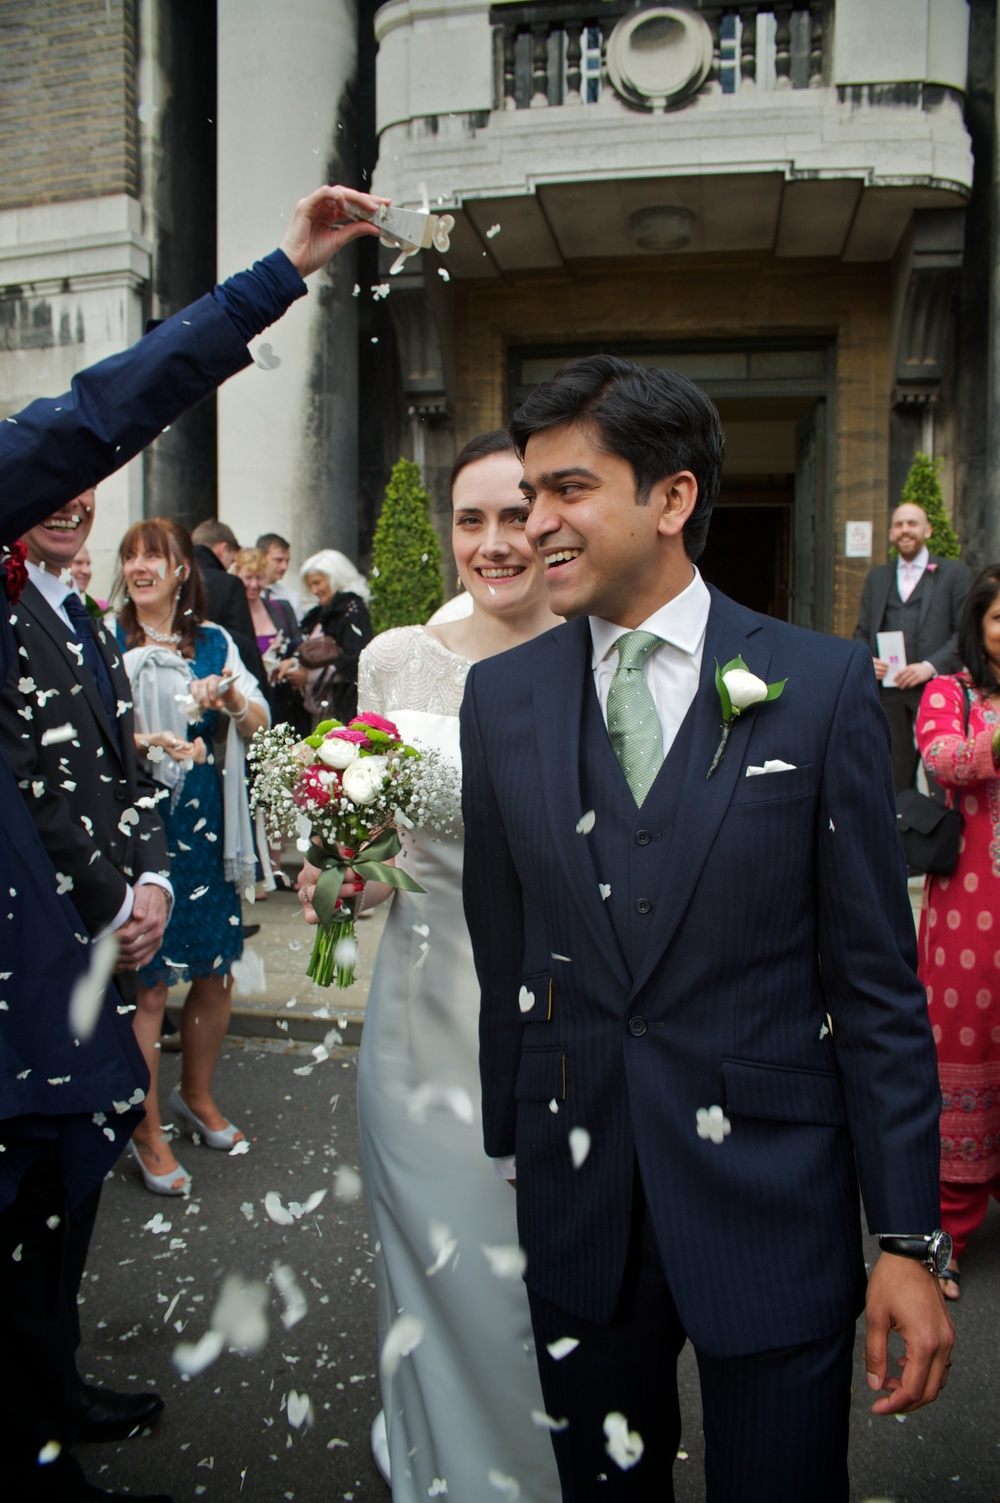 jade-raz-ahasan-wedding-navy-herringbone-wool-three-piece-suit-bespoke-all-uk-made.jpg